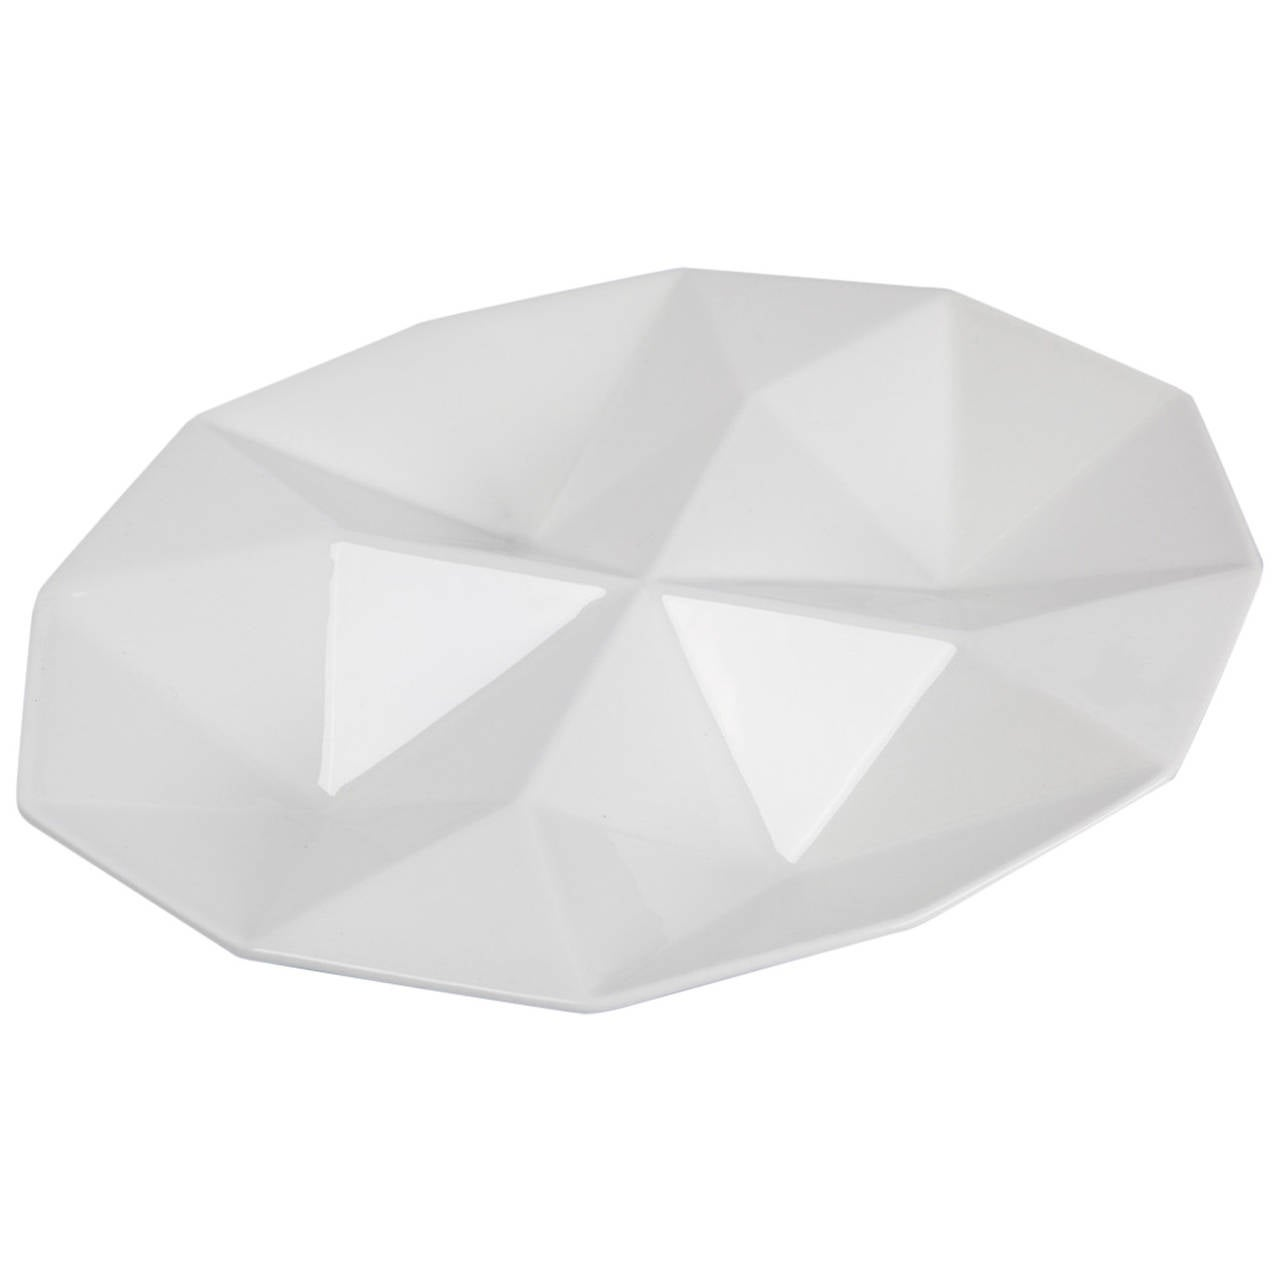 Finnish Dish Origami by Kaj Franck for Arabia of Finland, White Ceramic, 1960s For Sale